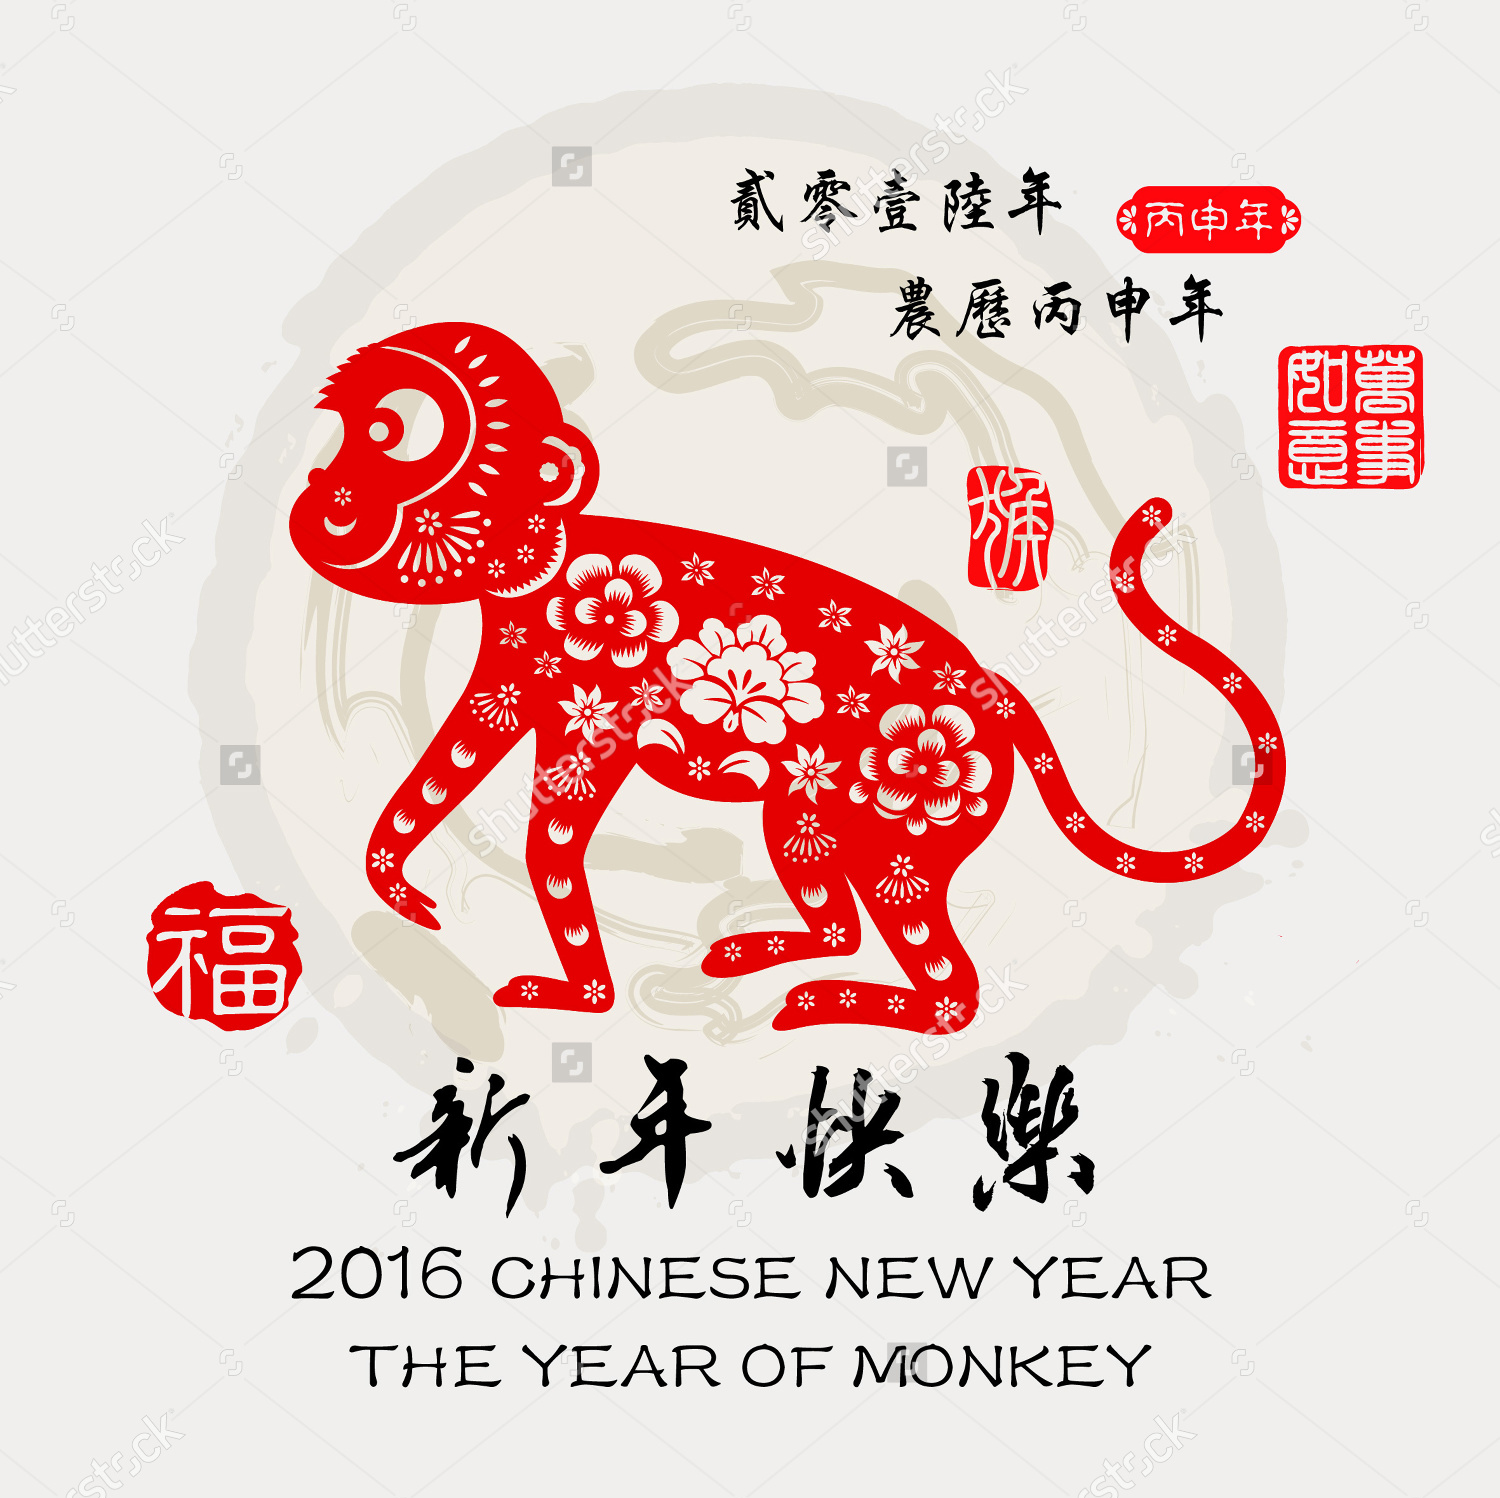 stock-vector--lunar-new-year-greeting-card-monkey-papercut-design-stamps-translation-good-fortune-290113259.jpg